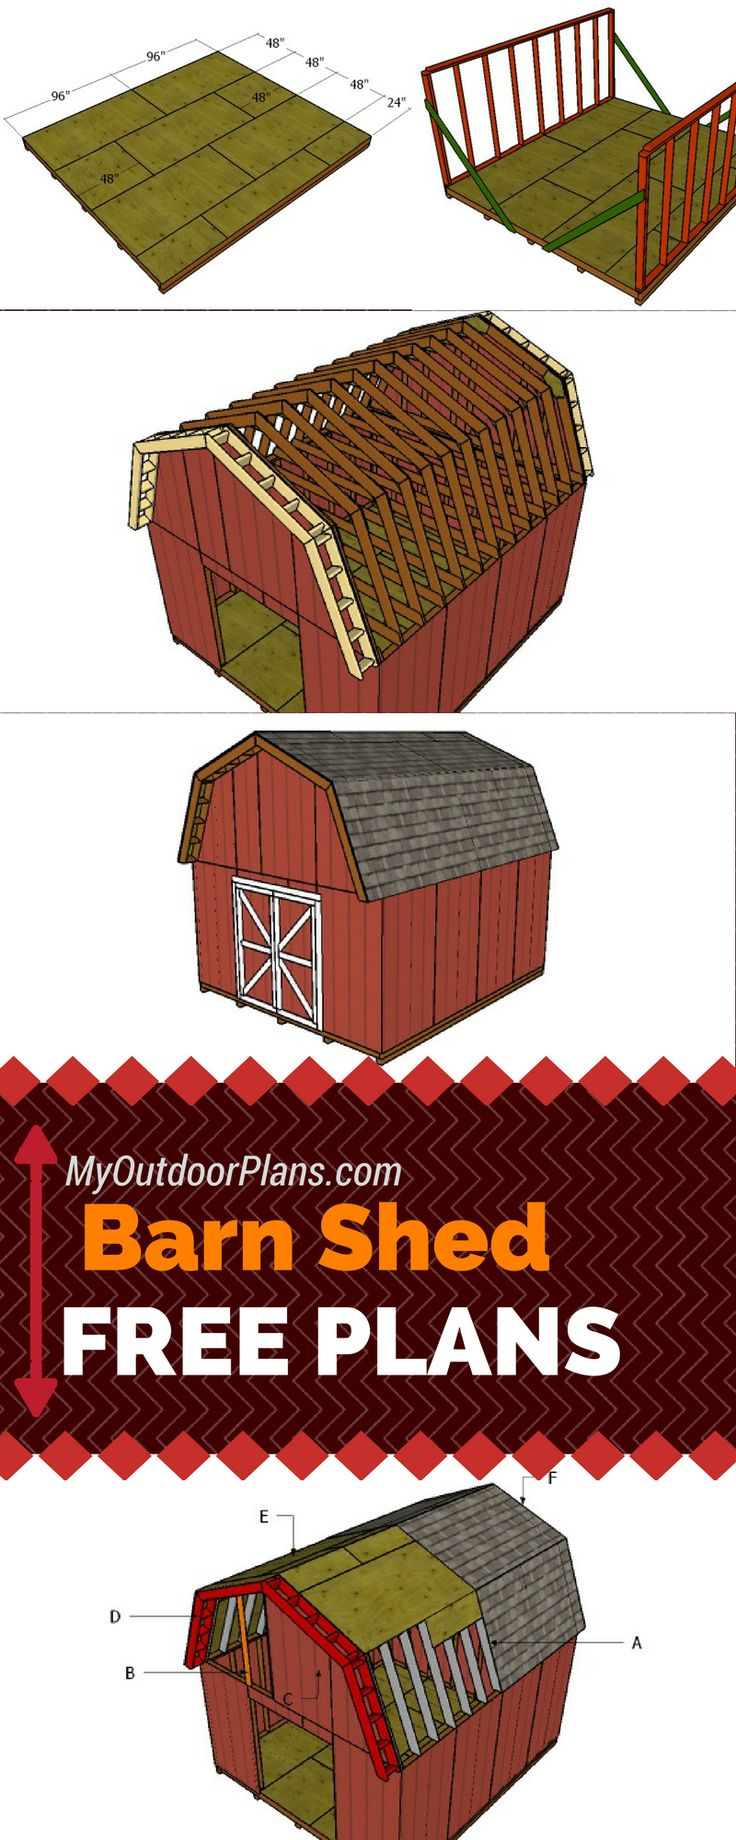 Free Barn Shed Plans - Learn how to build a 14x16 gambrel shed with my free instructions and step by step diagrams! myoutdoorplans.com #diy #shed